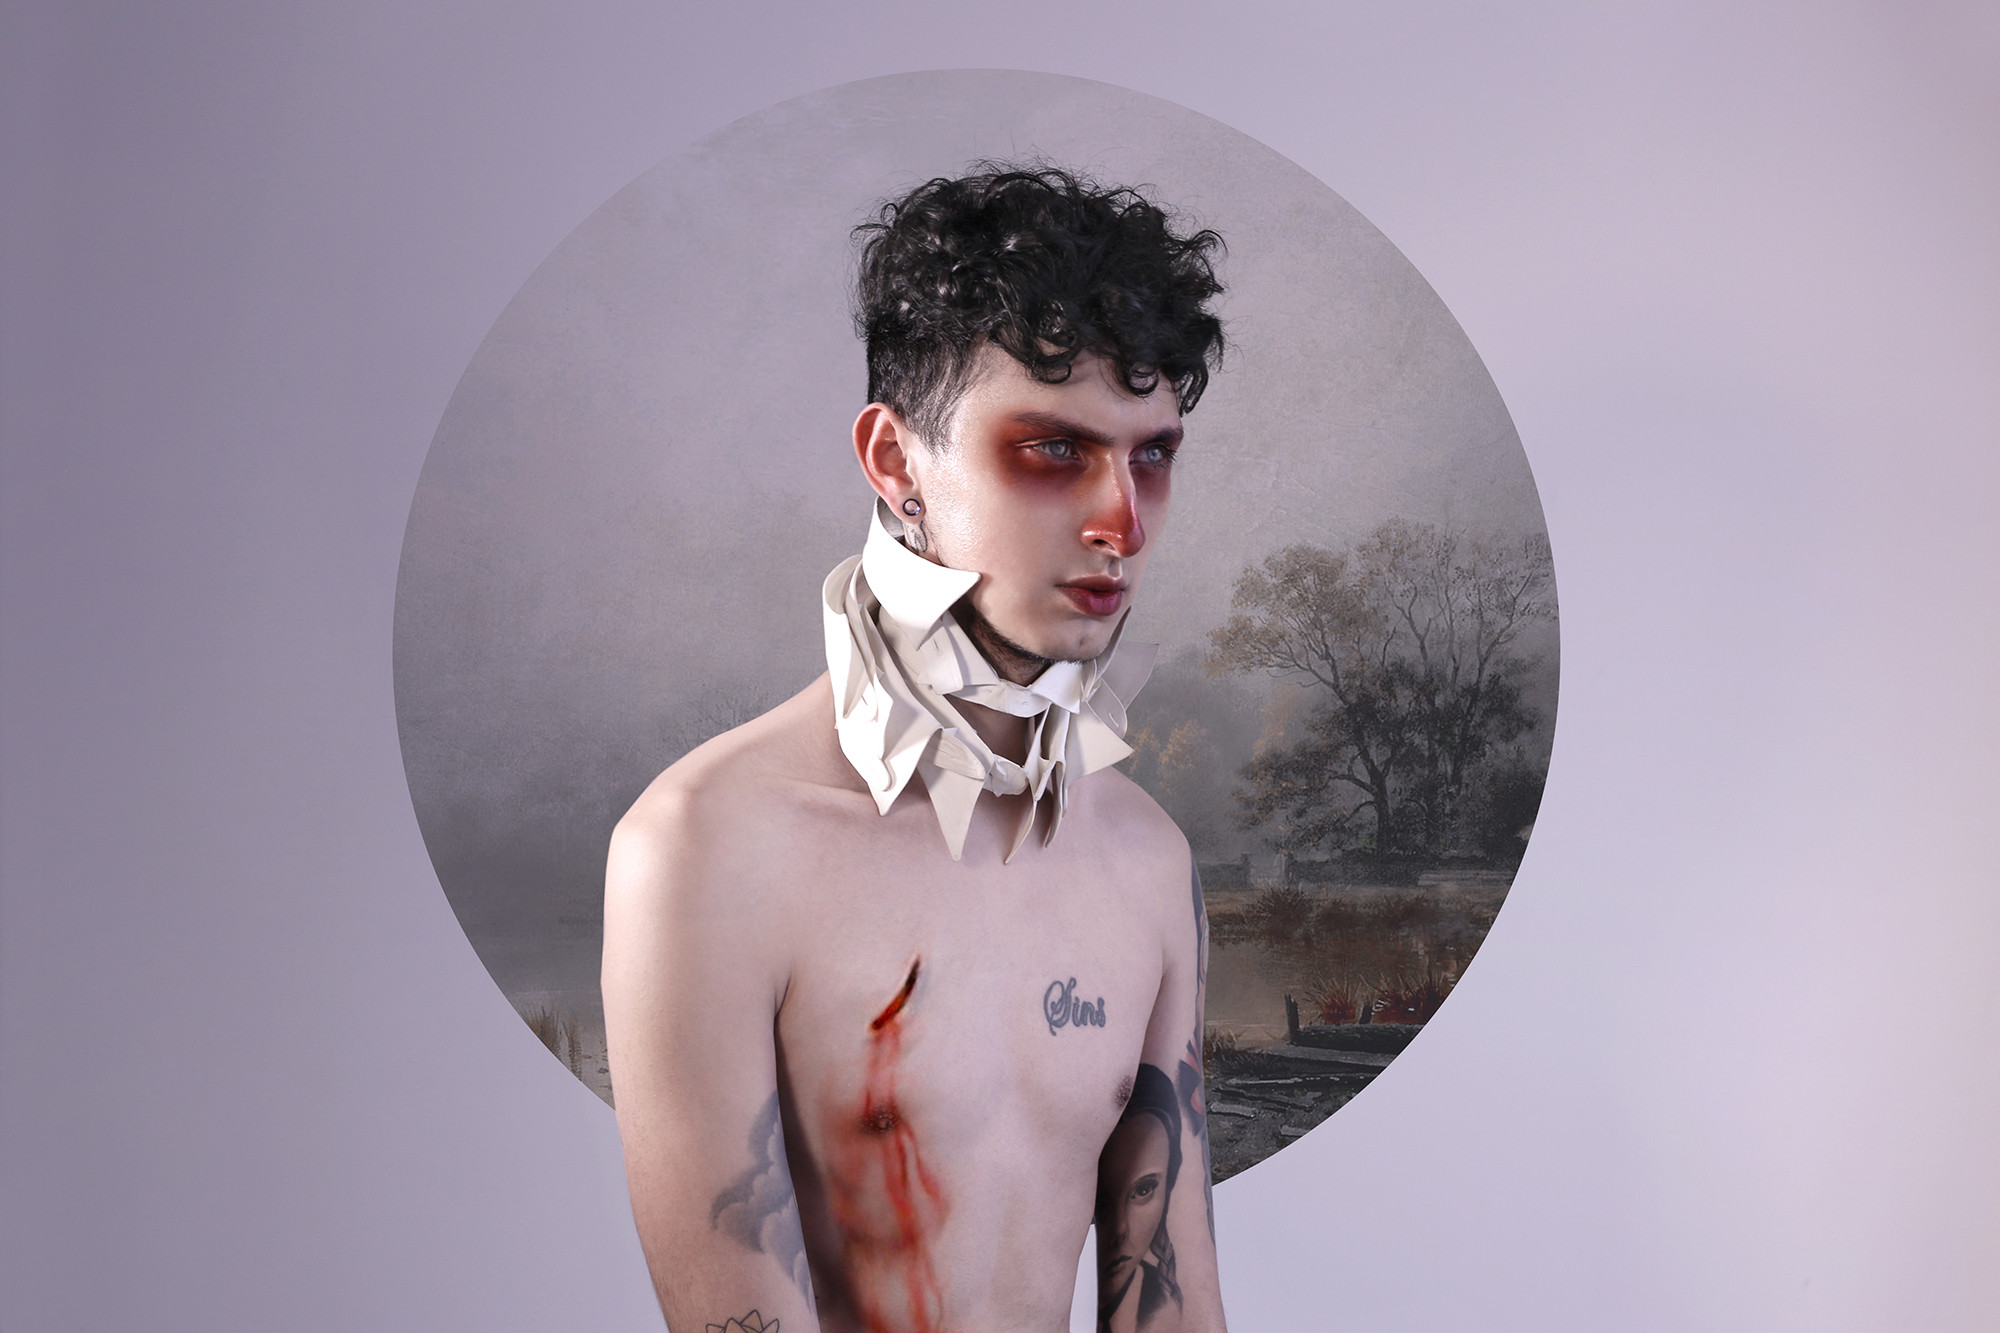 romanticism background, portrait of man, otherness series